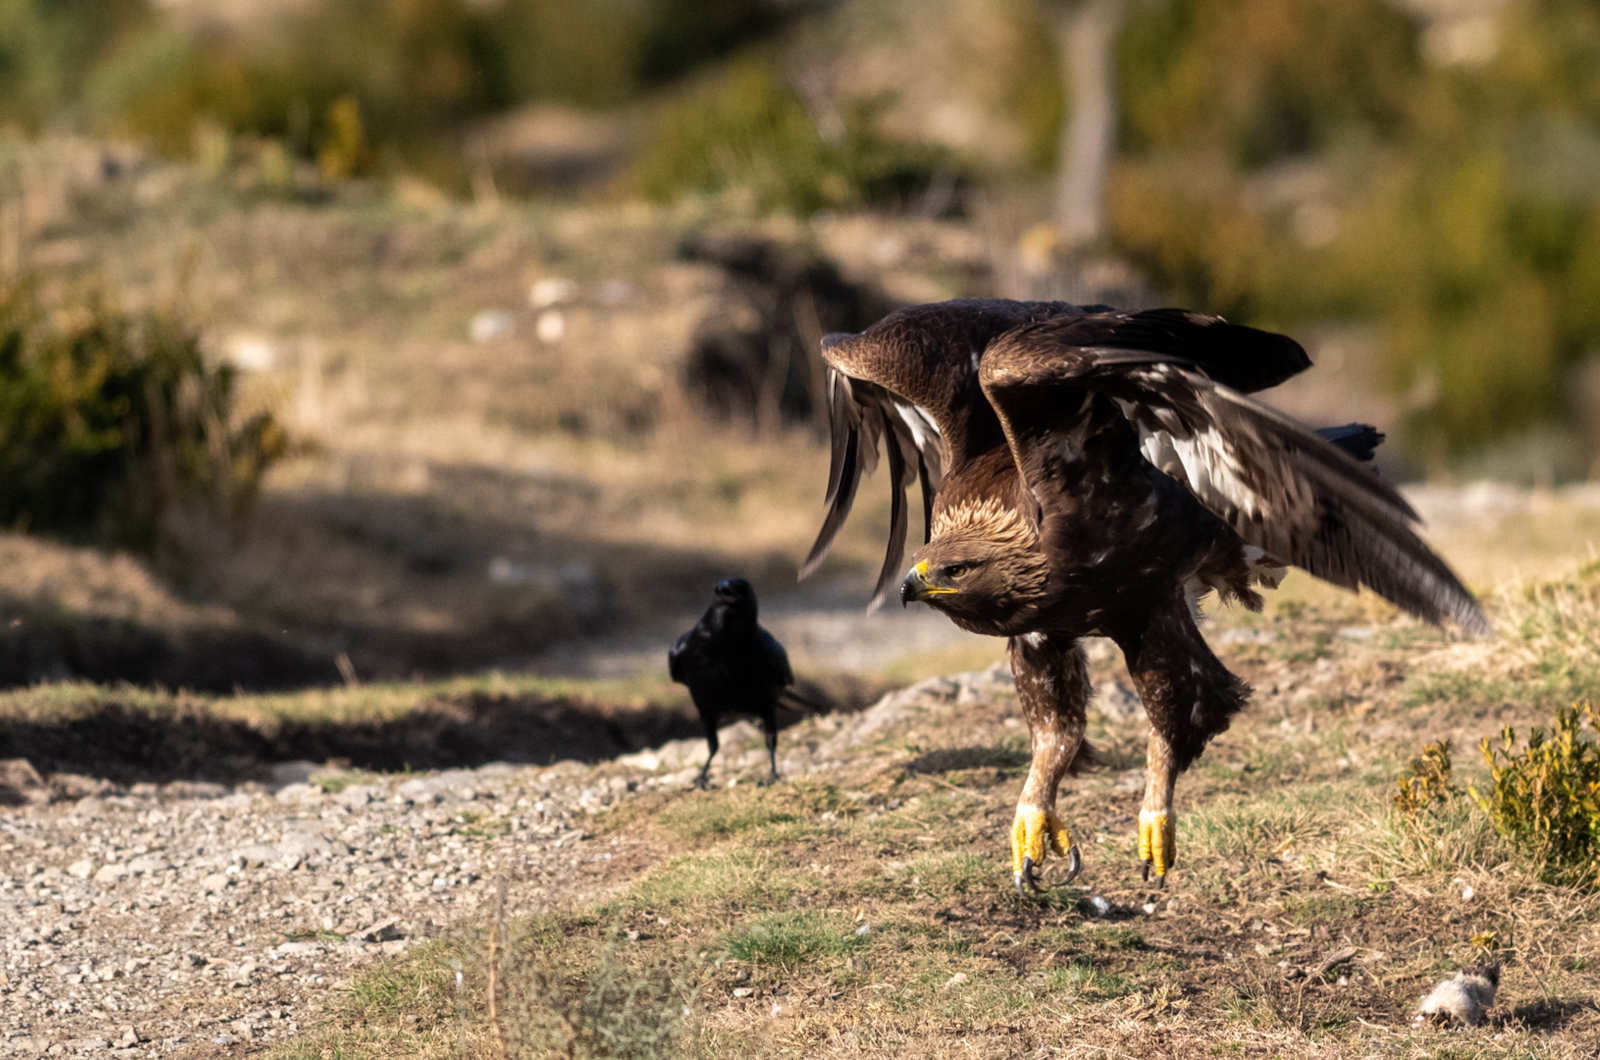 A golden eagle photographed with wings swooped back as it lands near our hides on our Photography Holiday Spain